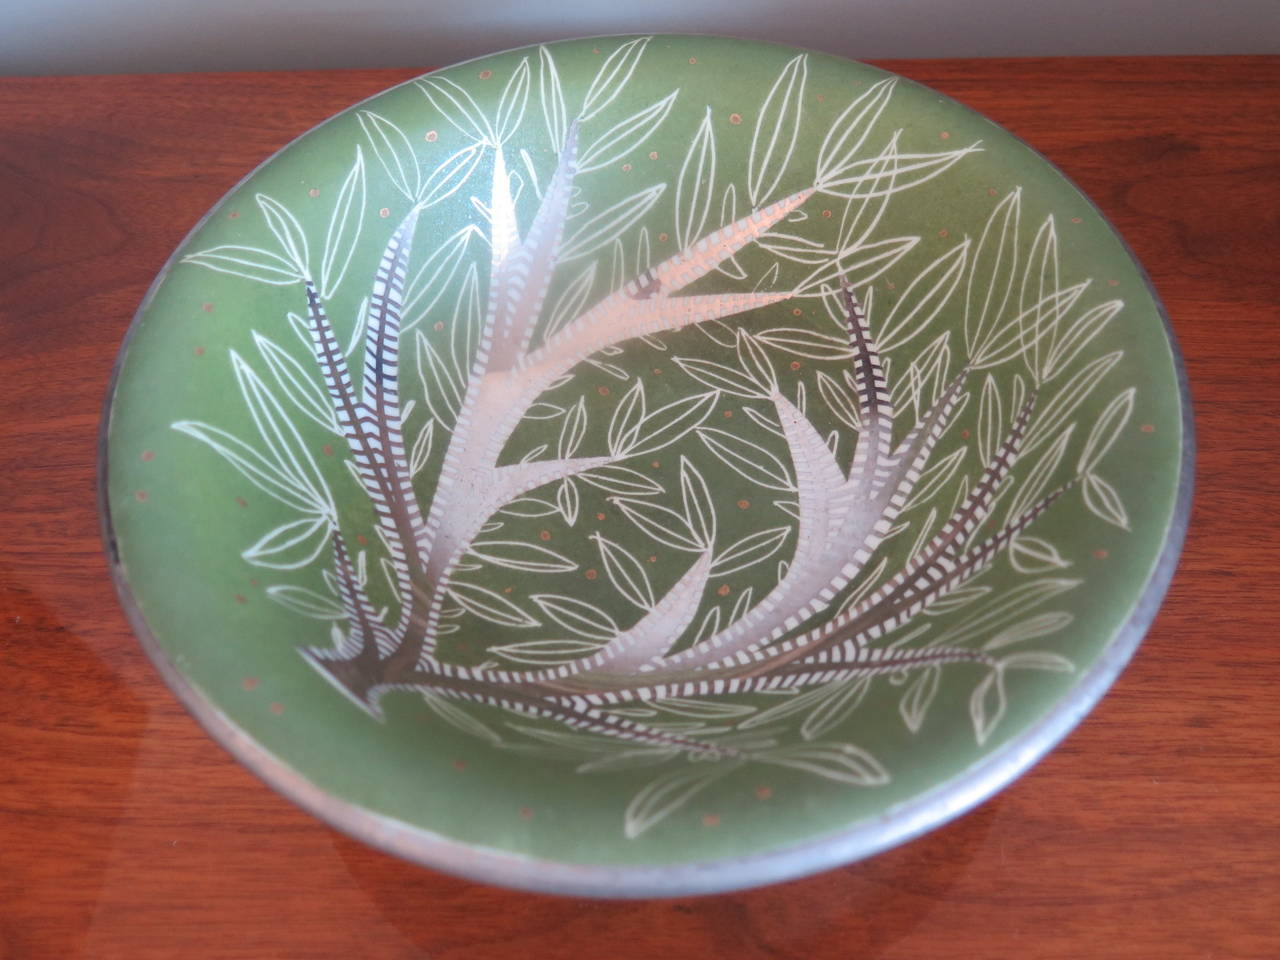 An elegant, hand painted bowl by Waylande Gregory. Stylized leaf pattern in green and silver leaf.